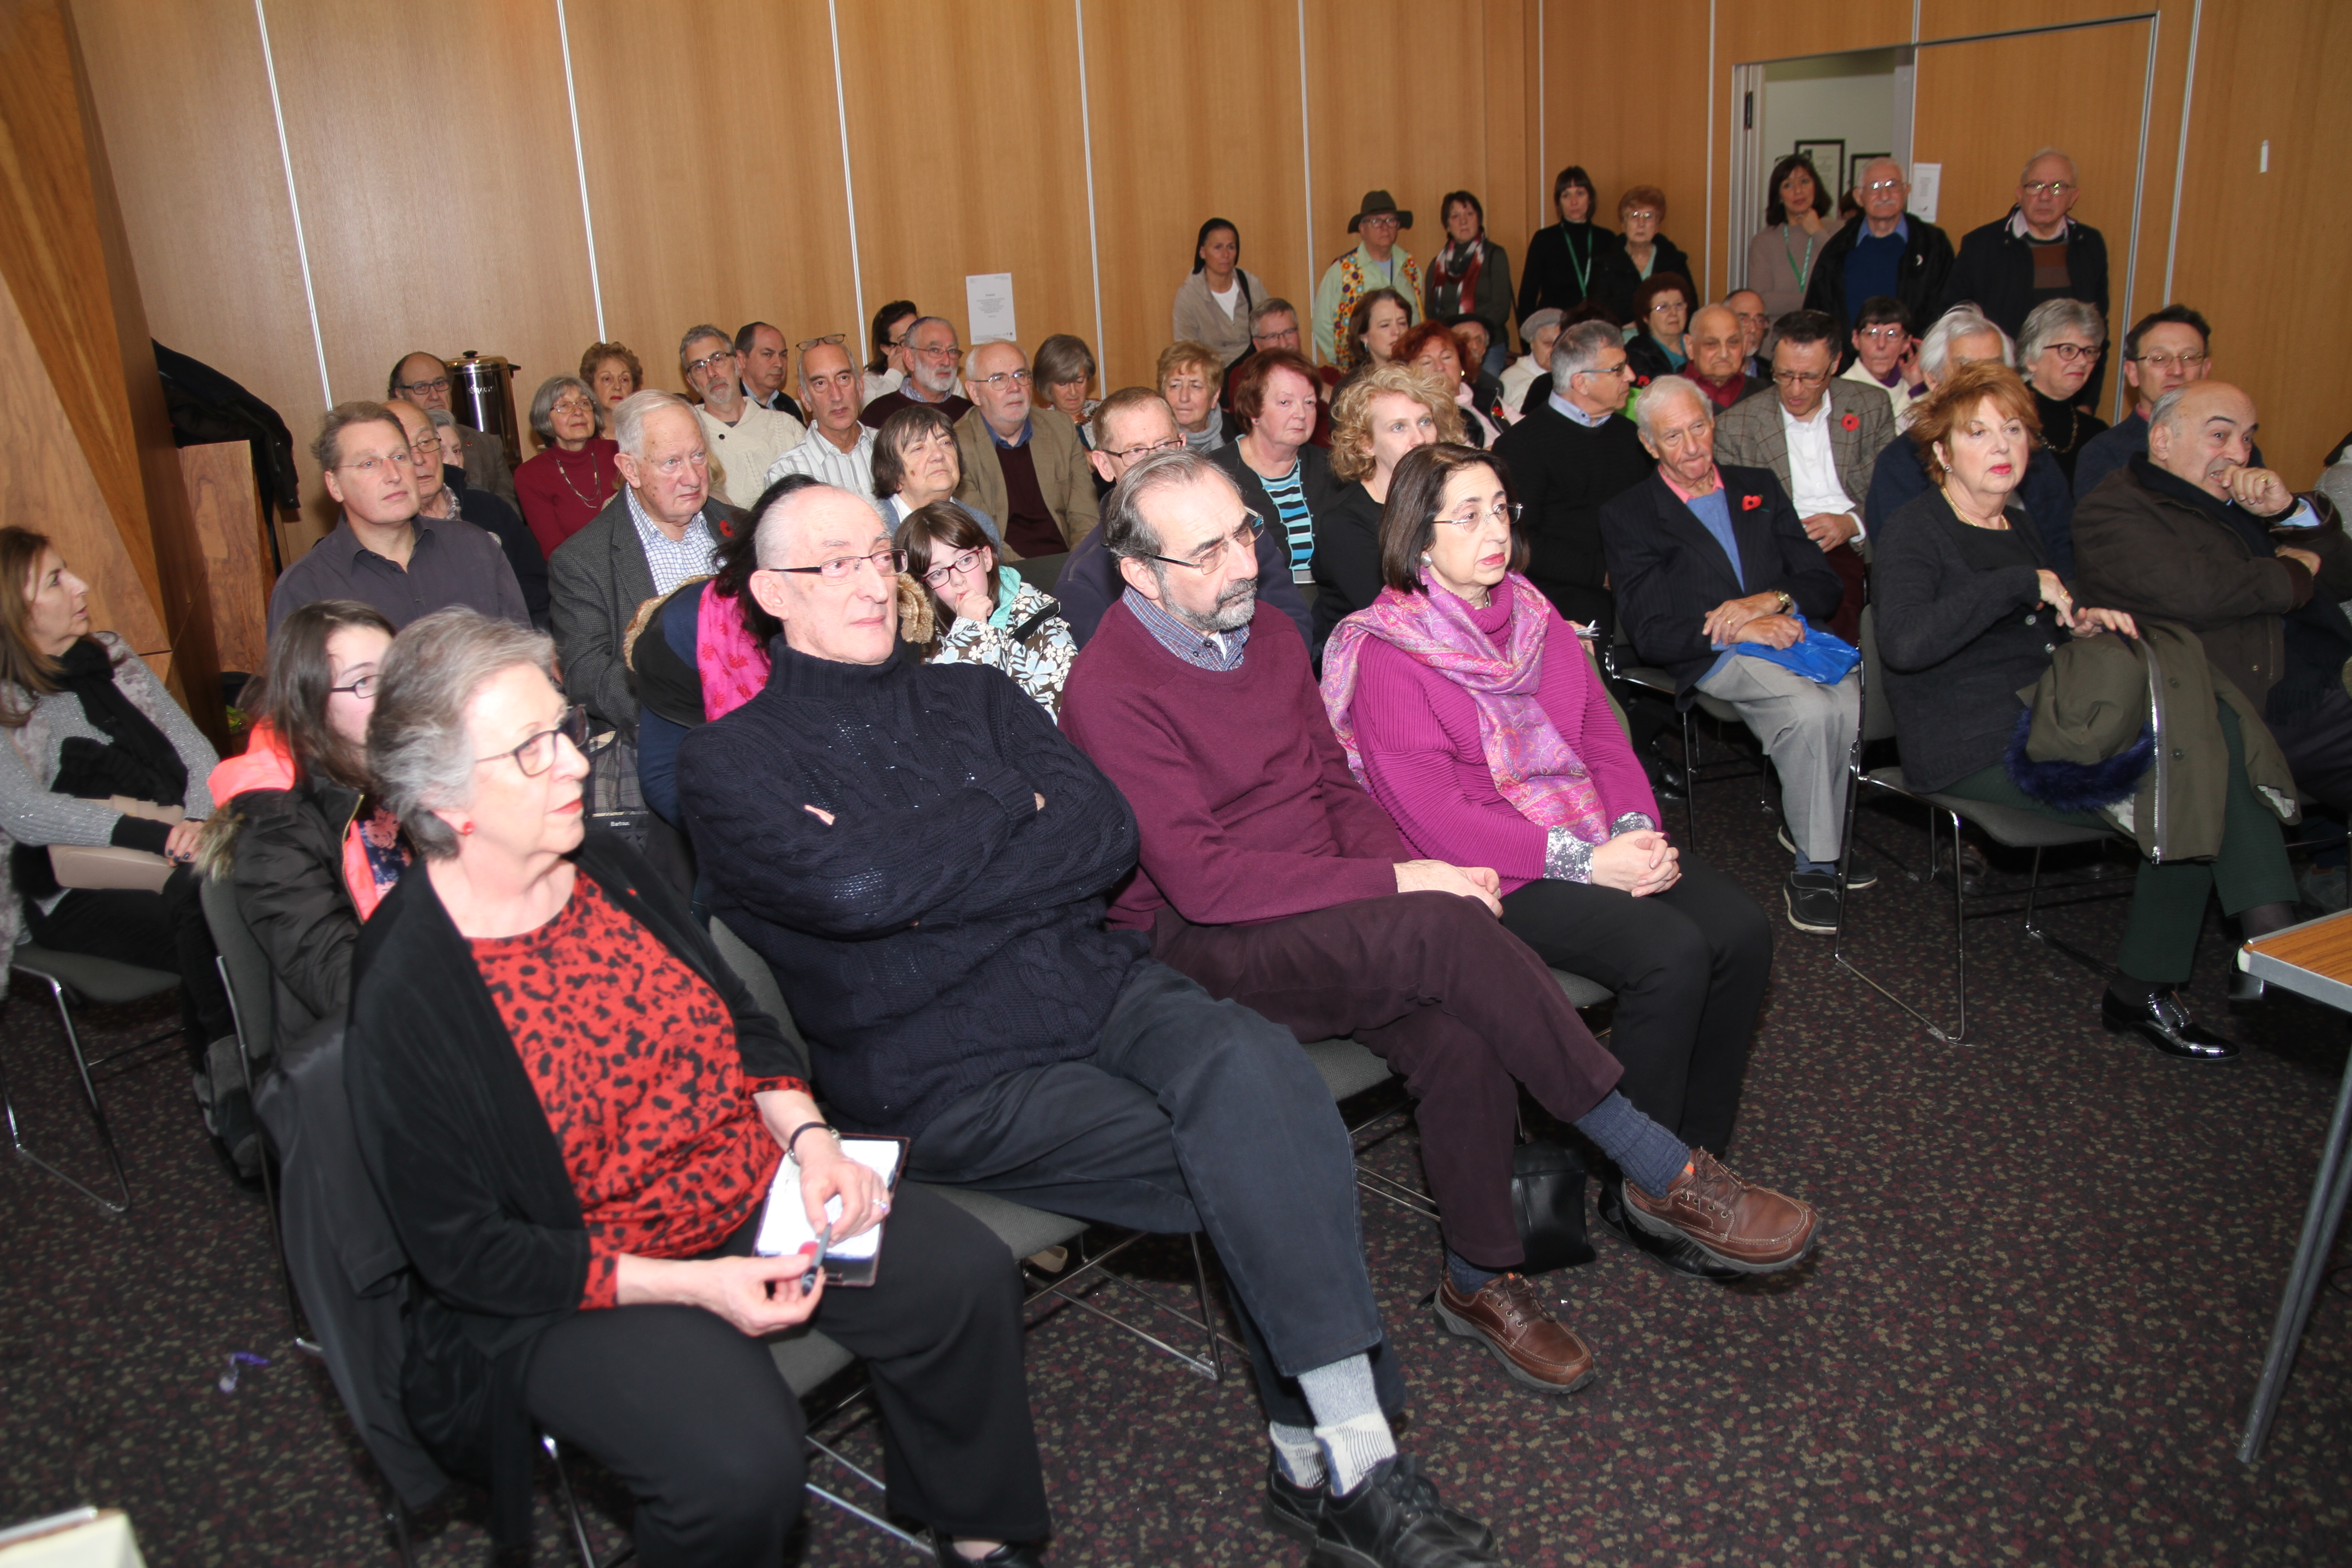 Roadshow 13/11/2016, New North London Synagogue. Audience